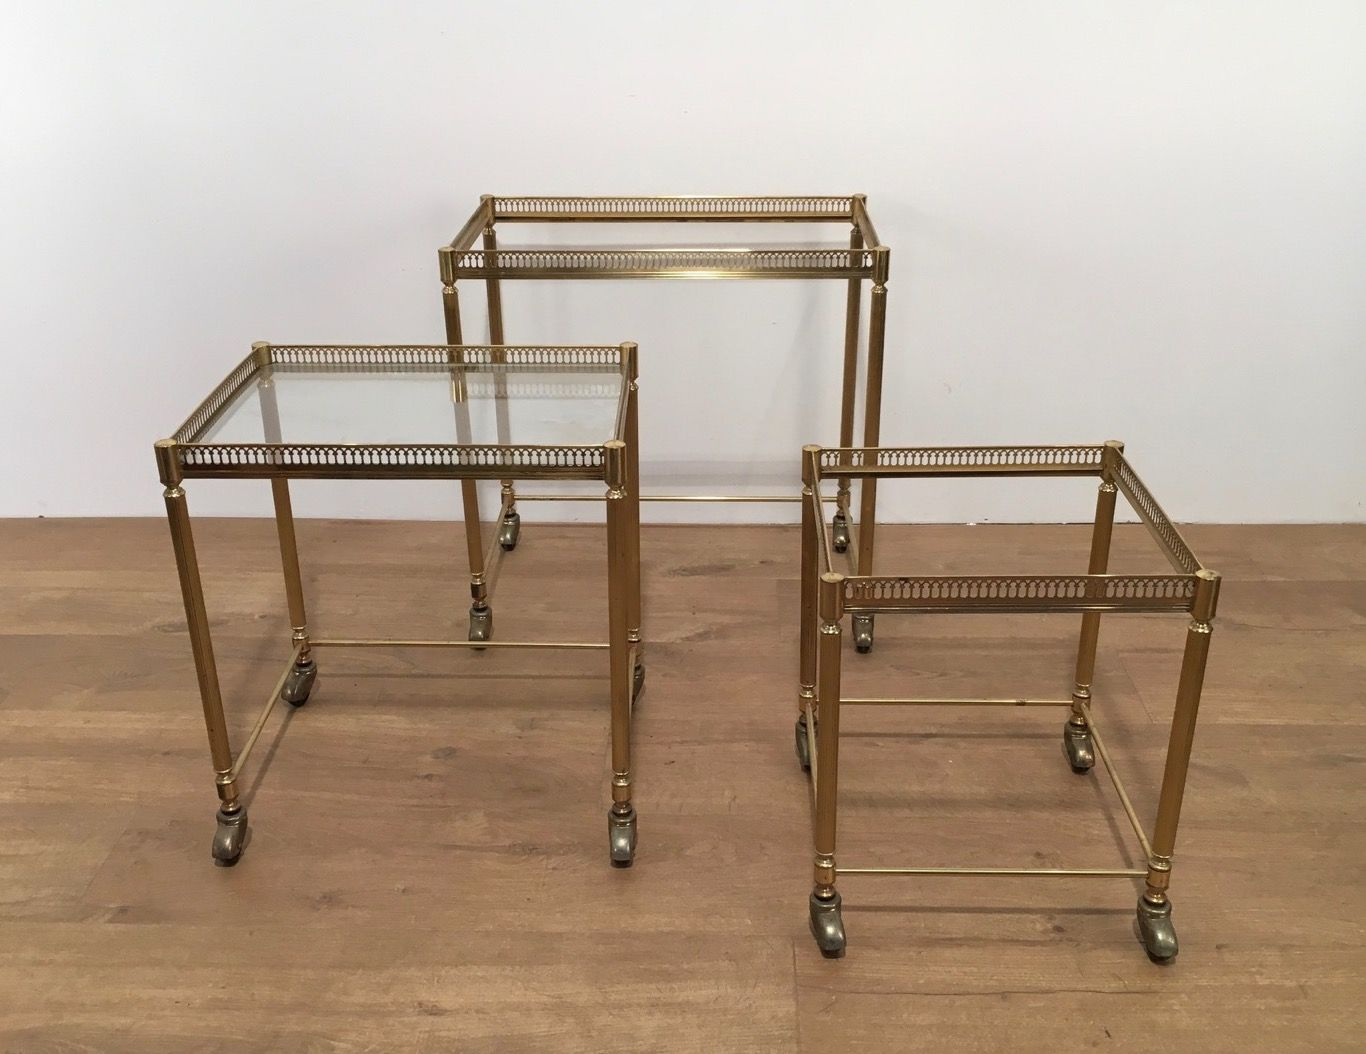 Amazing photo of Gilded Nesting Tables on Wheels 1950s Set of 3 for sale at Pamono with #45301B color and 1366x1054 pixels